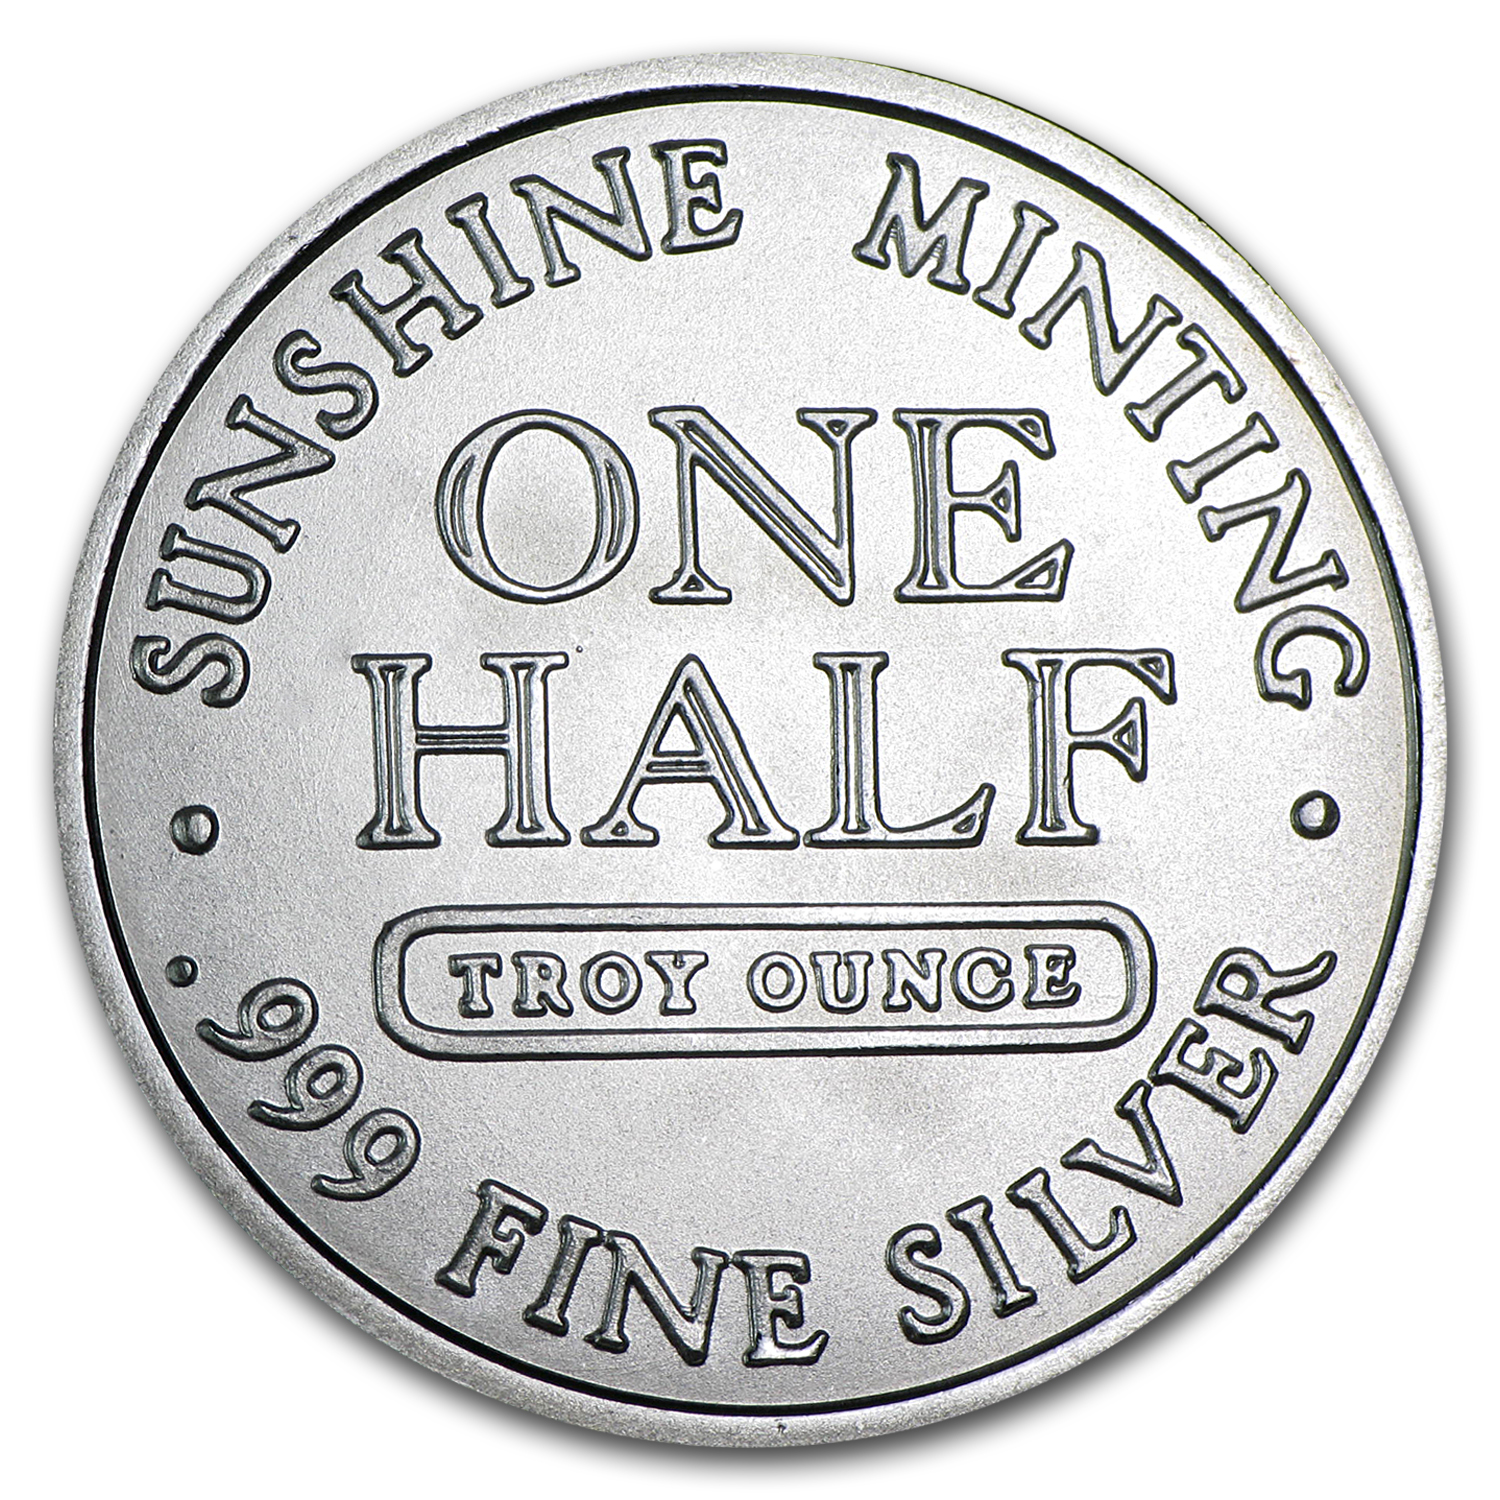 1/2 oz Silver Rounds - Sunshine Mint (Vintage Design)